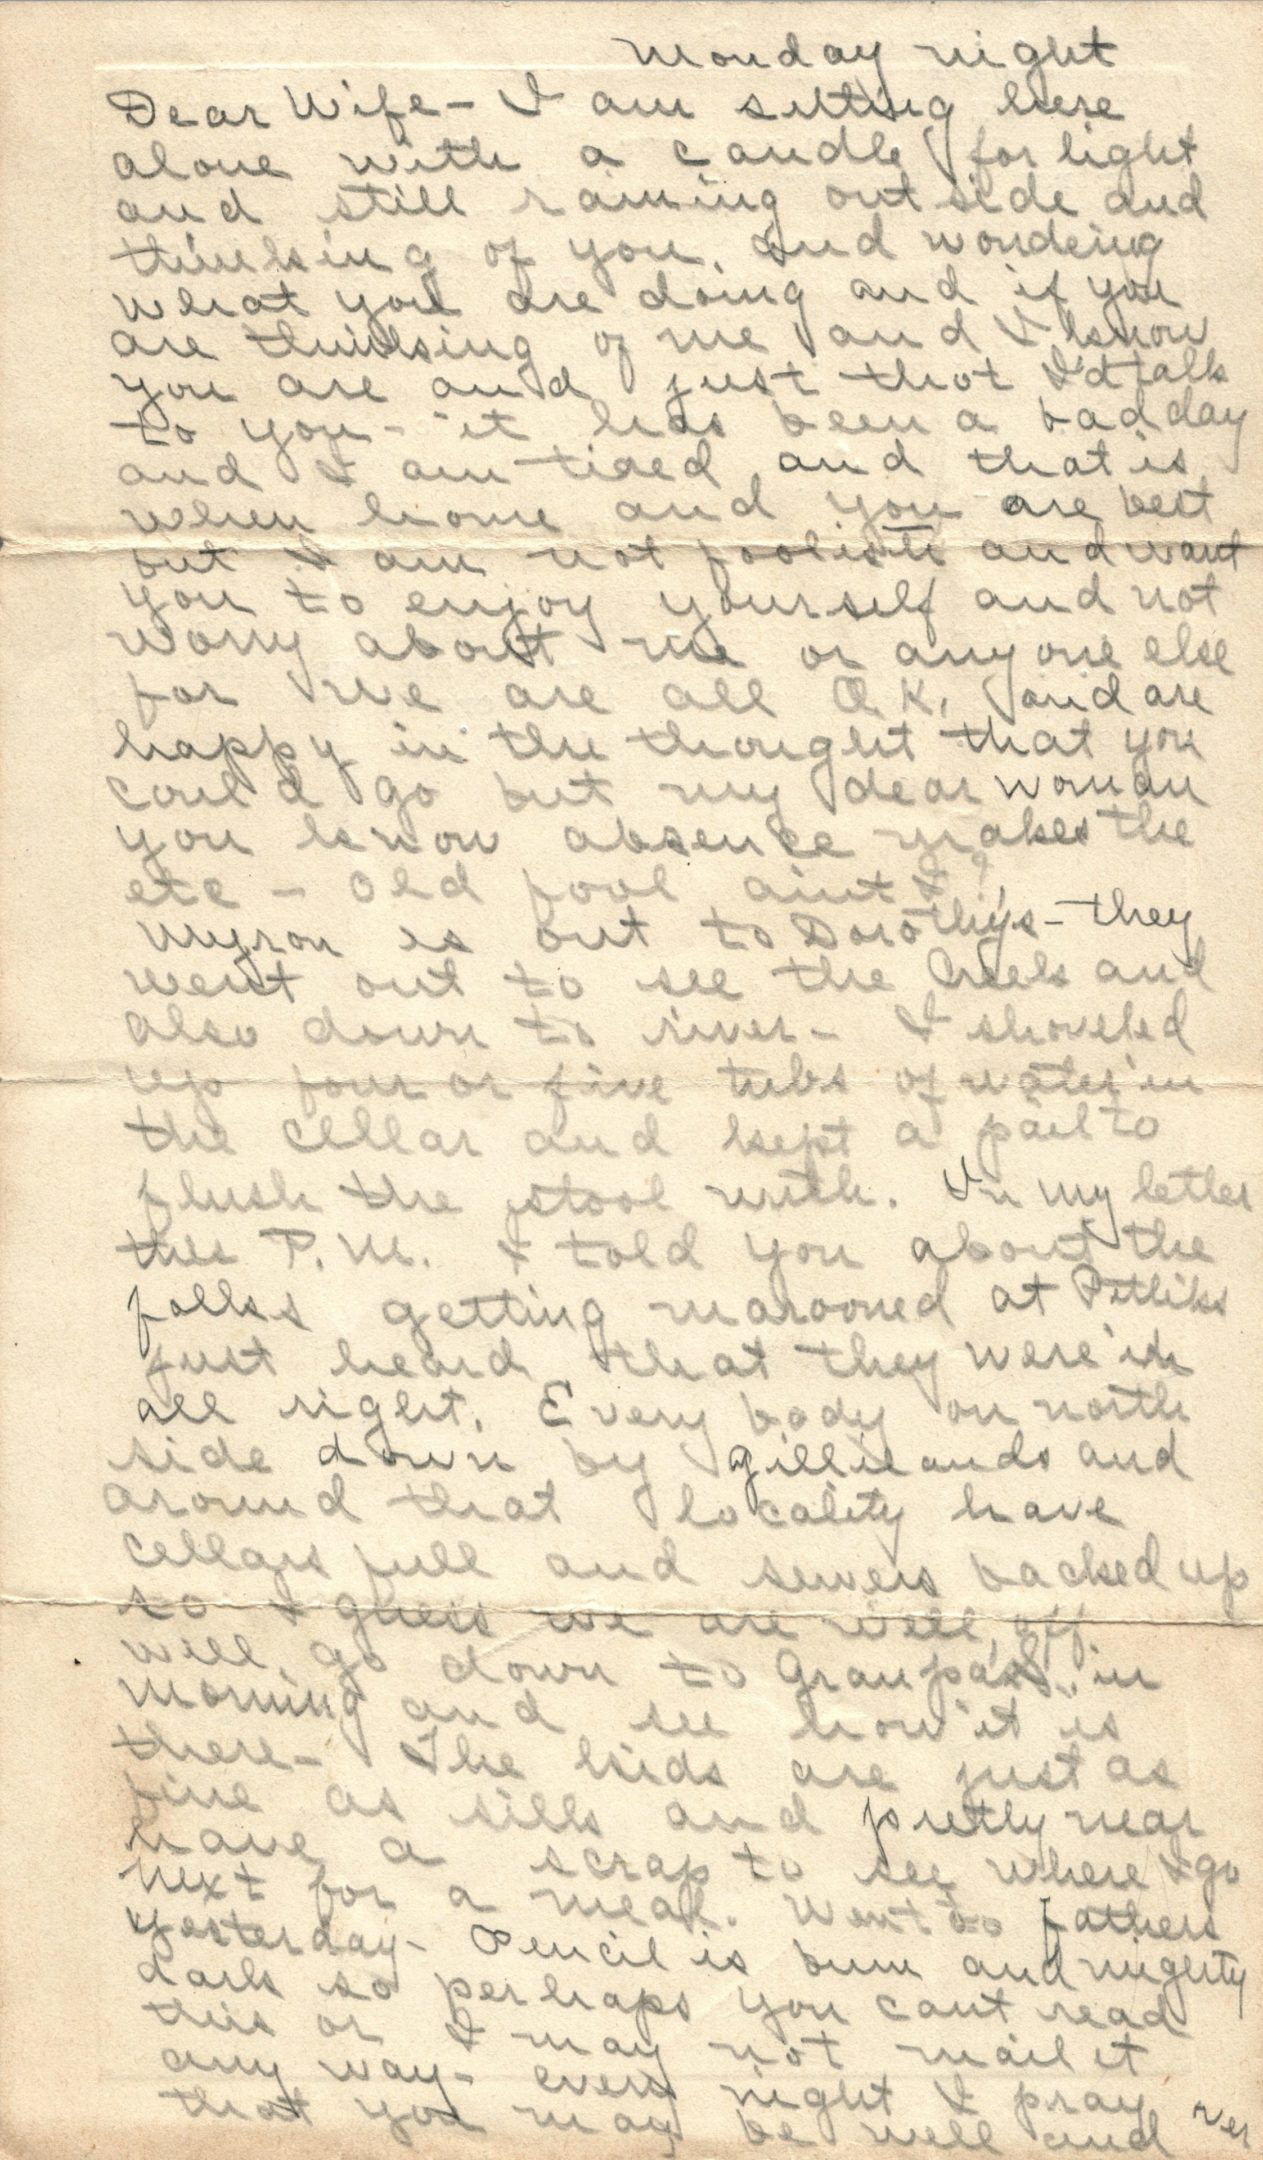 Photo of Letter from C.W. Neff to Wife Nellie